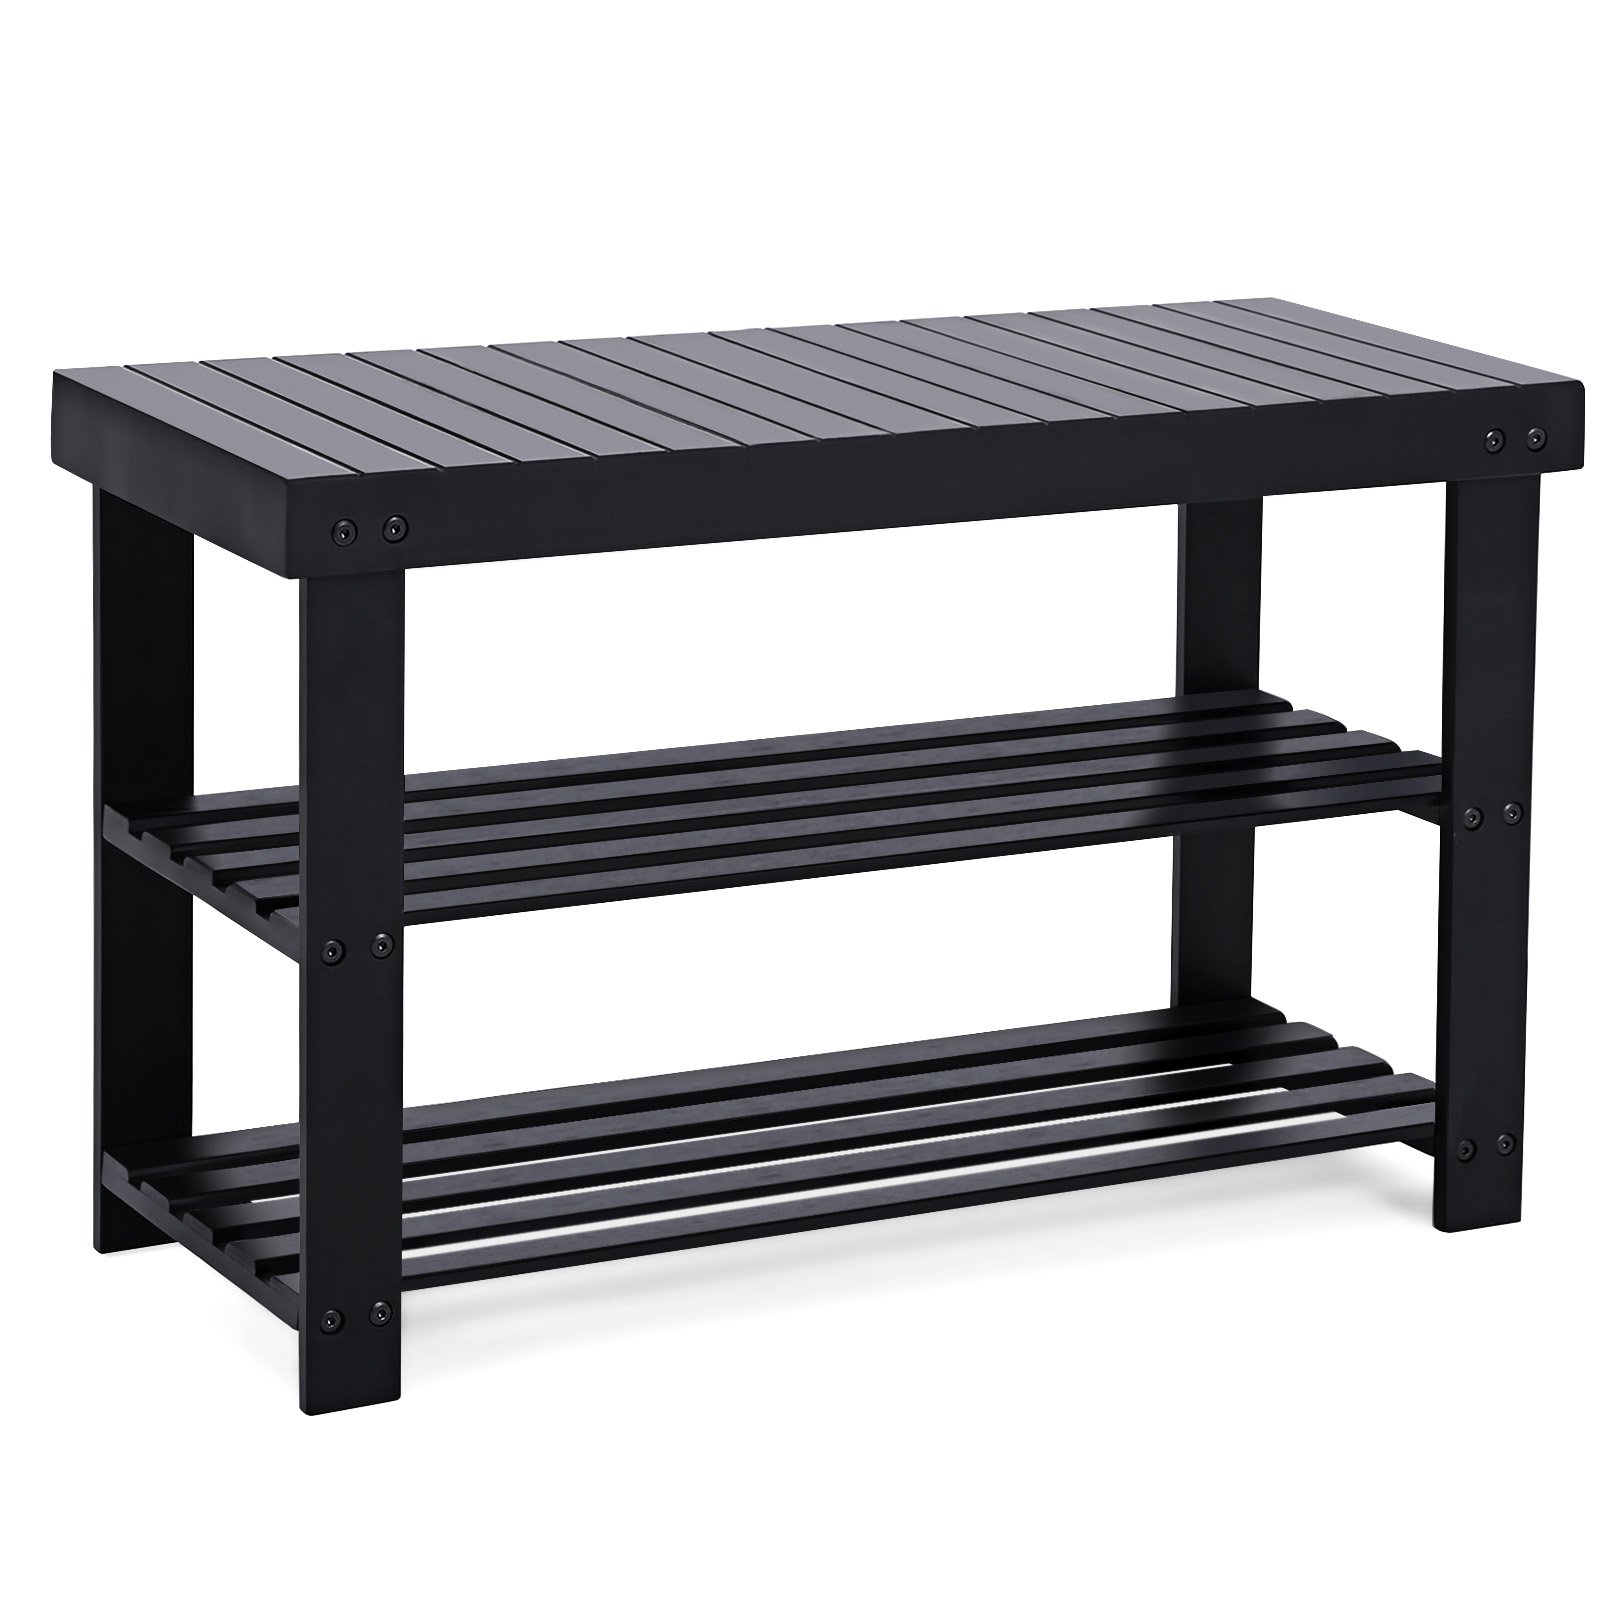 SONGMICS Black Shoe Rack Bench, 3-Tier Bamboo Shoe Organizer, Storage Shelf, Holds Up to 264 Lb, Ideal for Entryway Hallway Bathroom Living Room and Corridor ULBS04H by SONGMICS